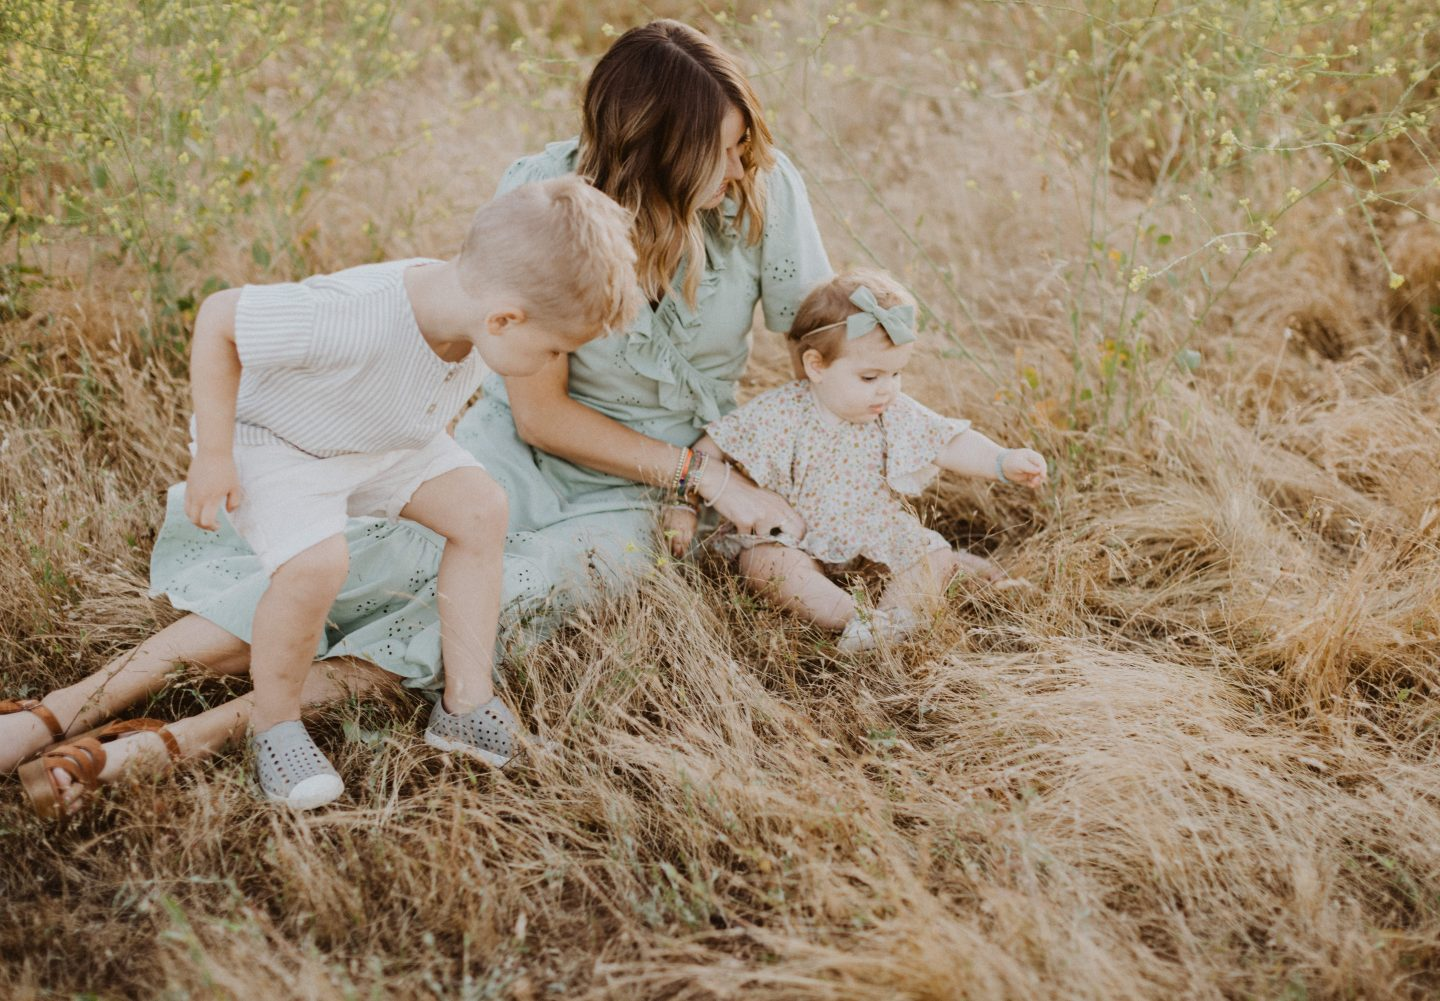 Family Photo Ideas by popular San Diego lifestyle blog, Navy Grace: image of a and her two children sitting together in a field and wearing Rylee and Cru clothing, Zappos Native Kids Shoes Jefferson, ASOS DESIGN ruffle broderie midi dress in sage green, and Sezane High Thomas Sandals.